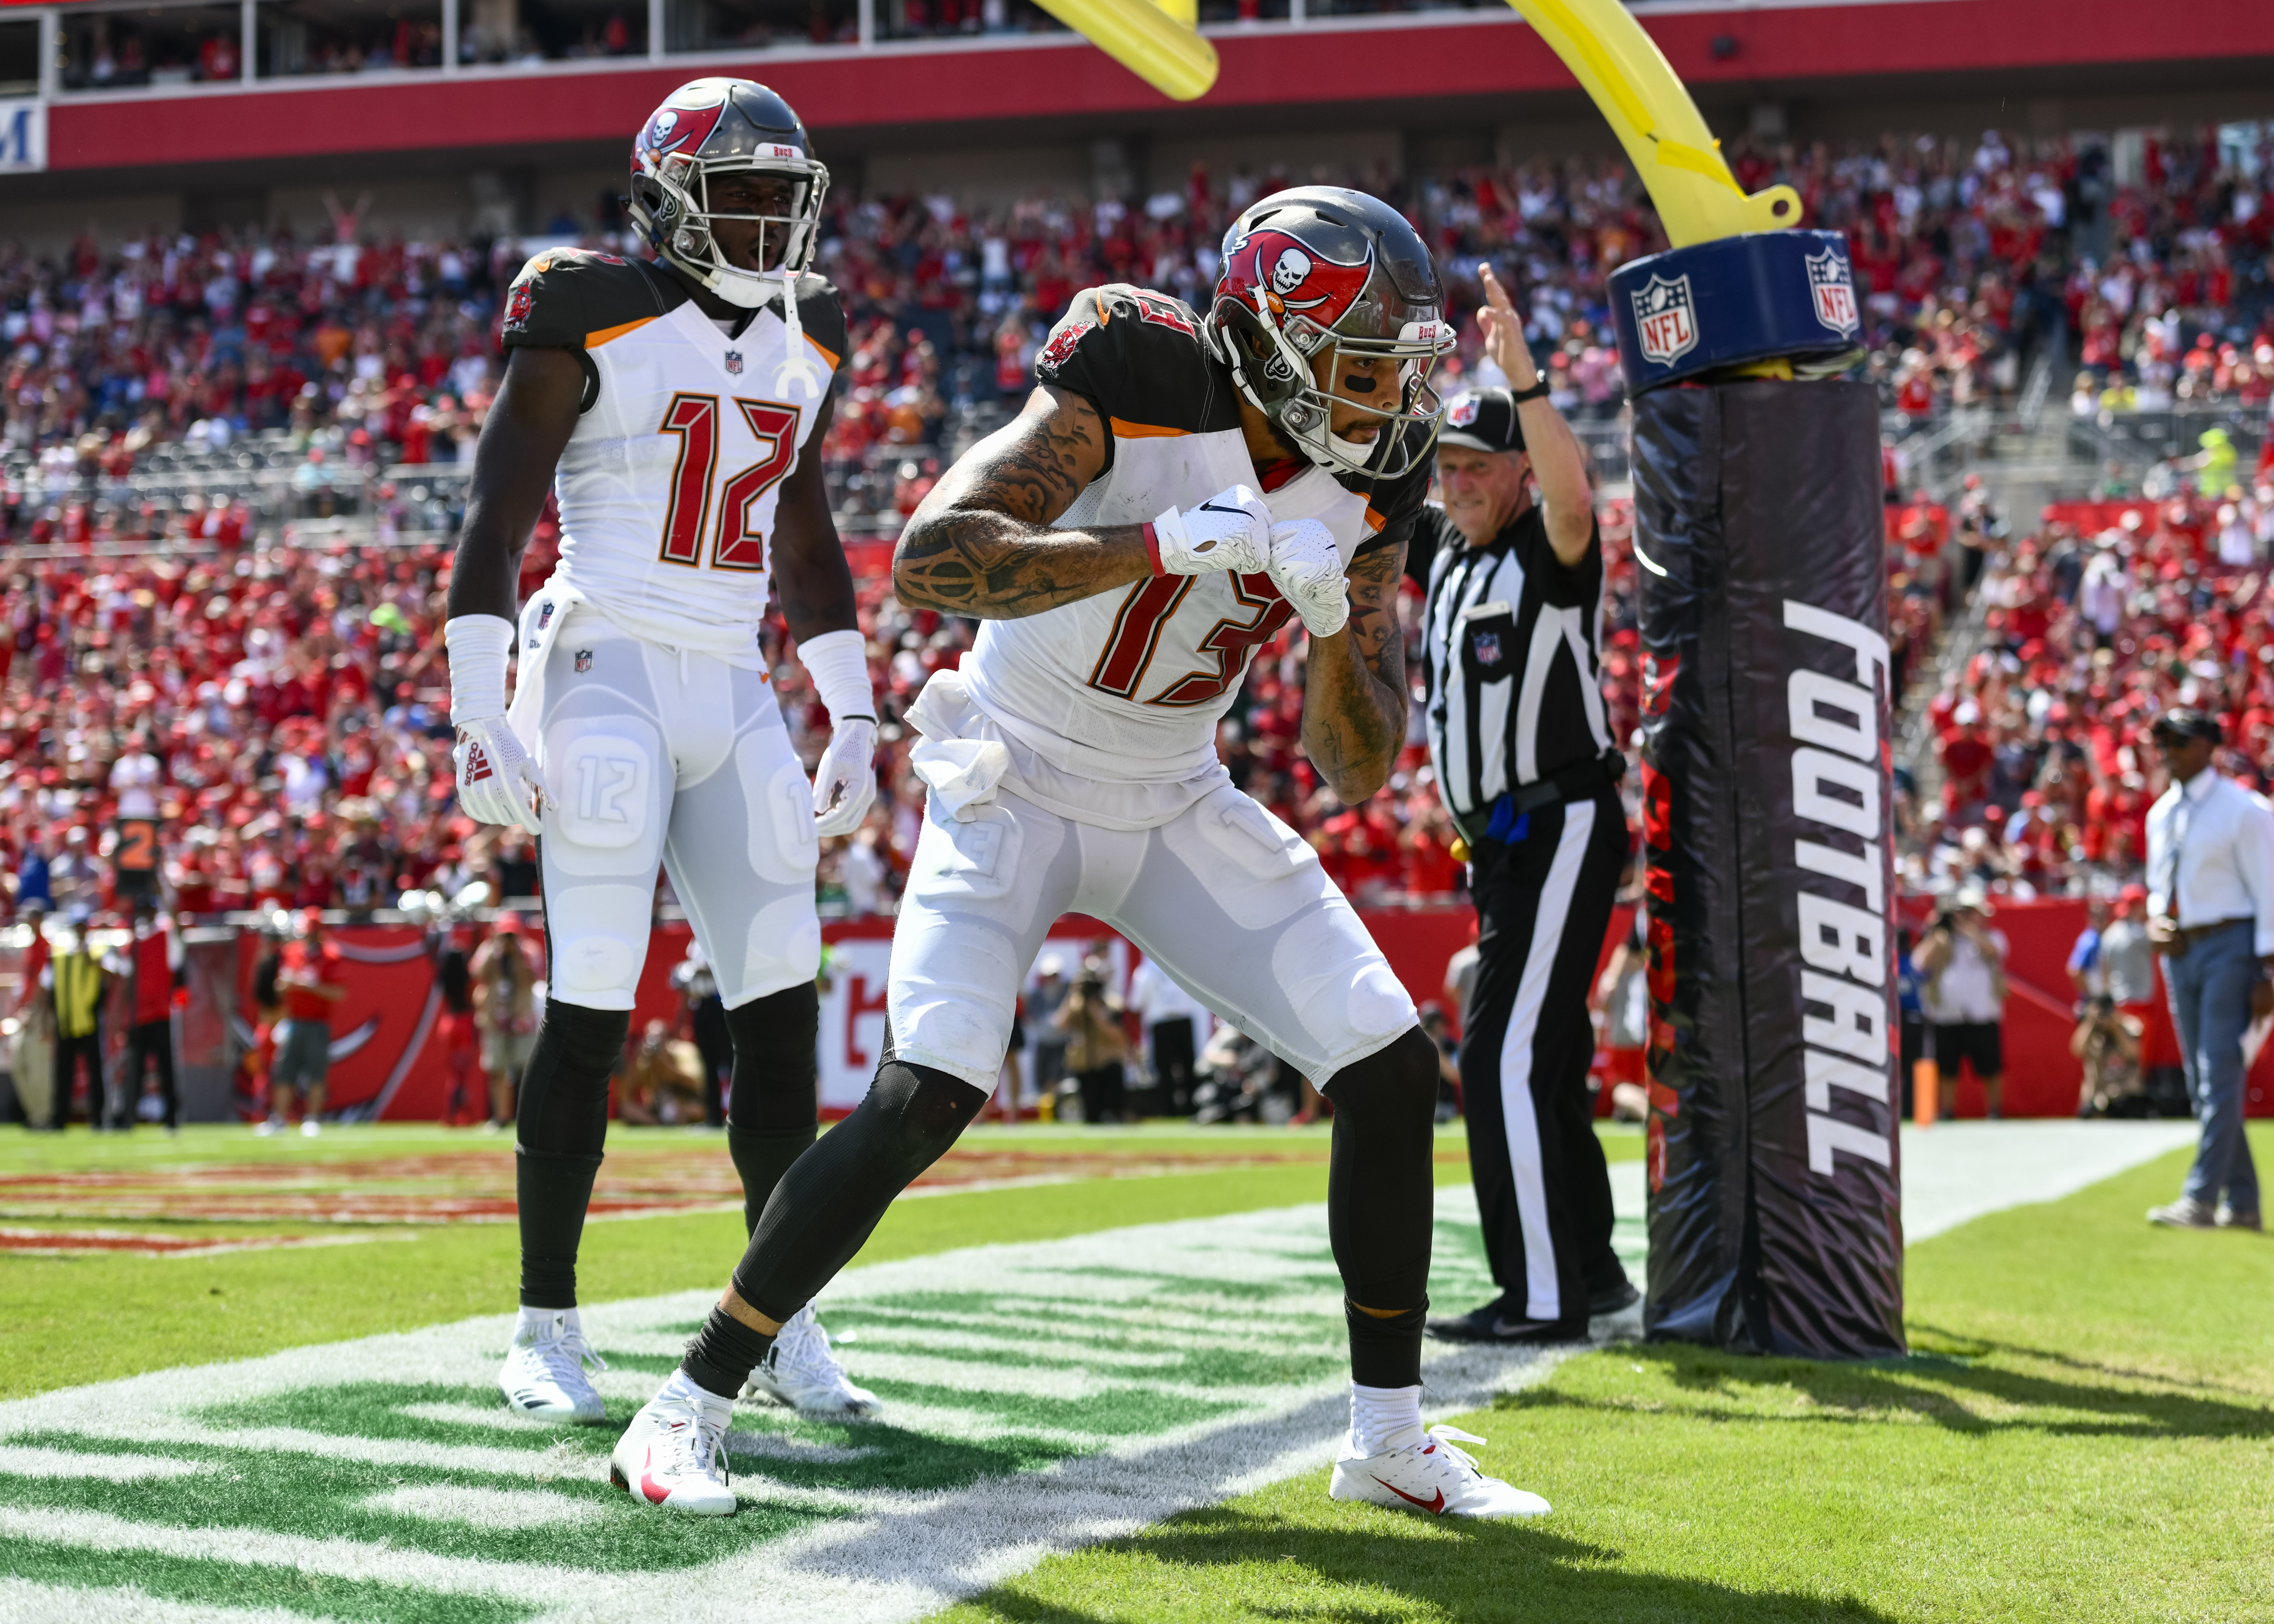 NFL: SEP 16 Eagles at Buccaneers